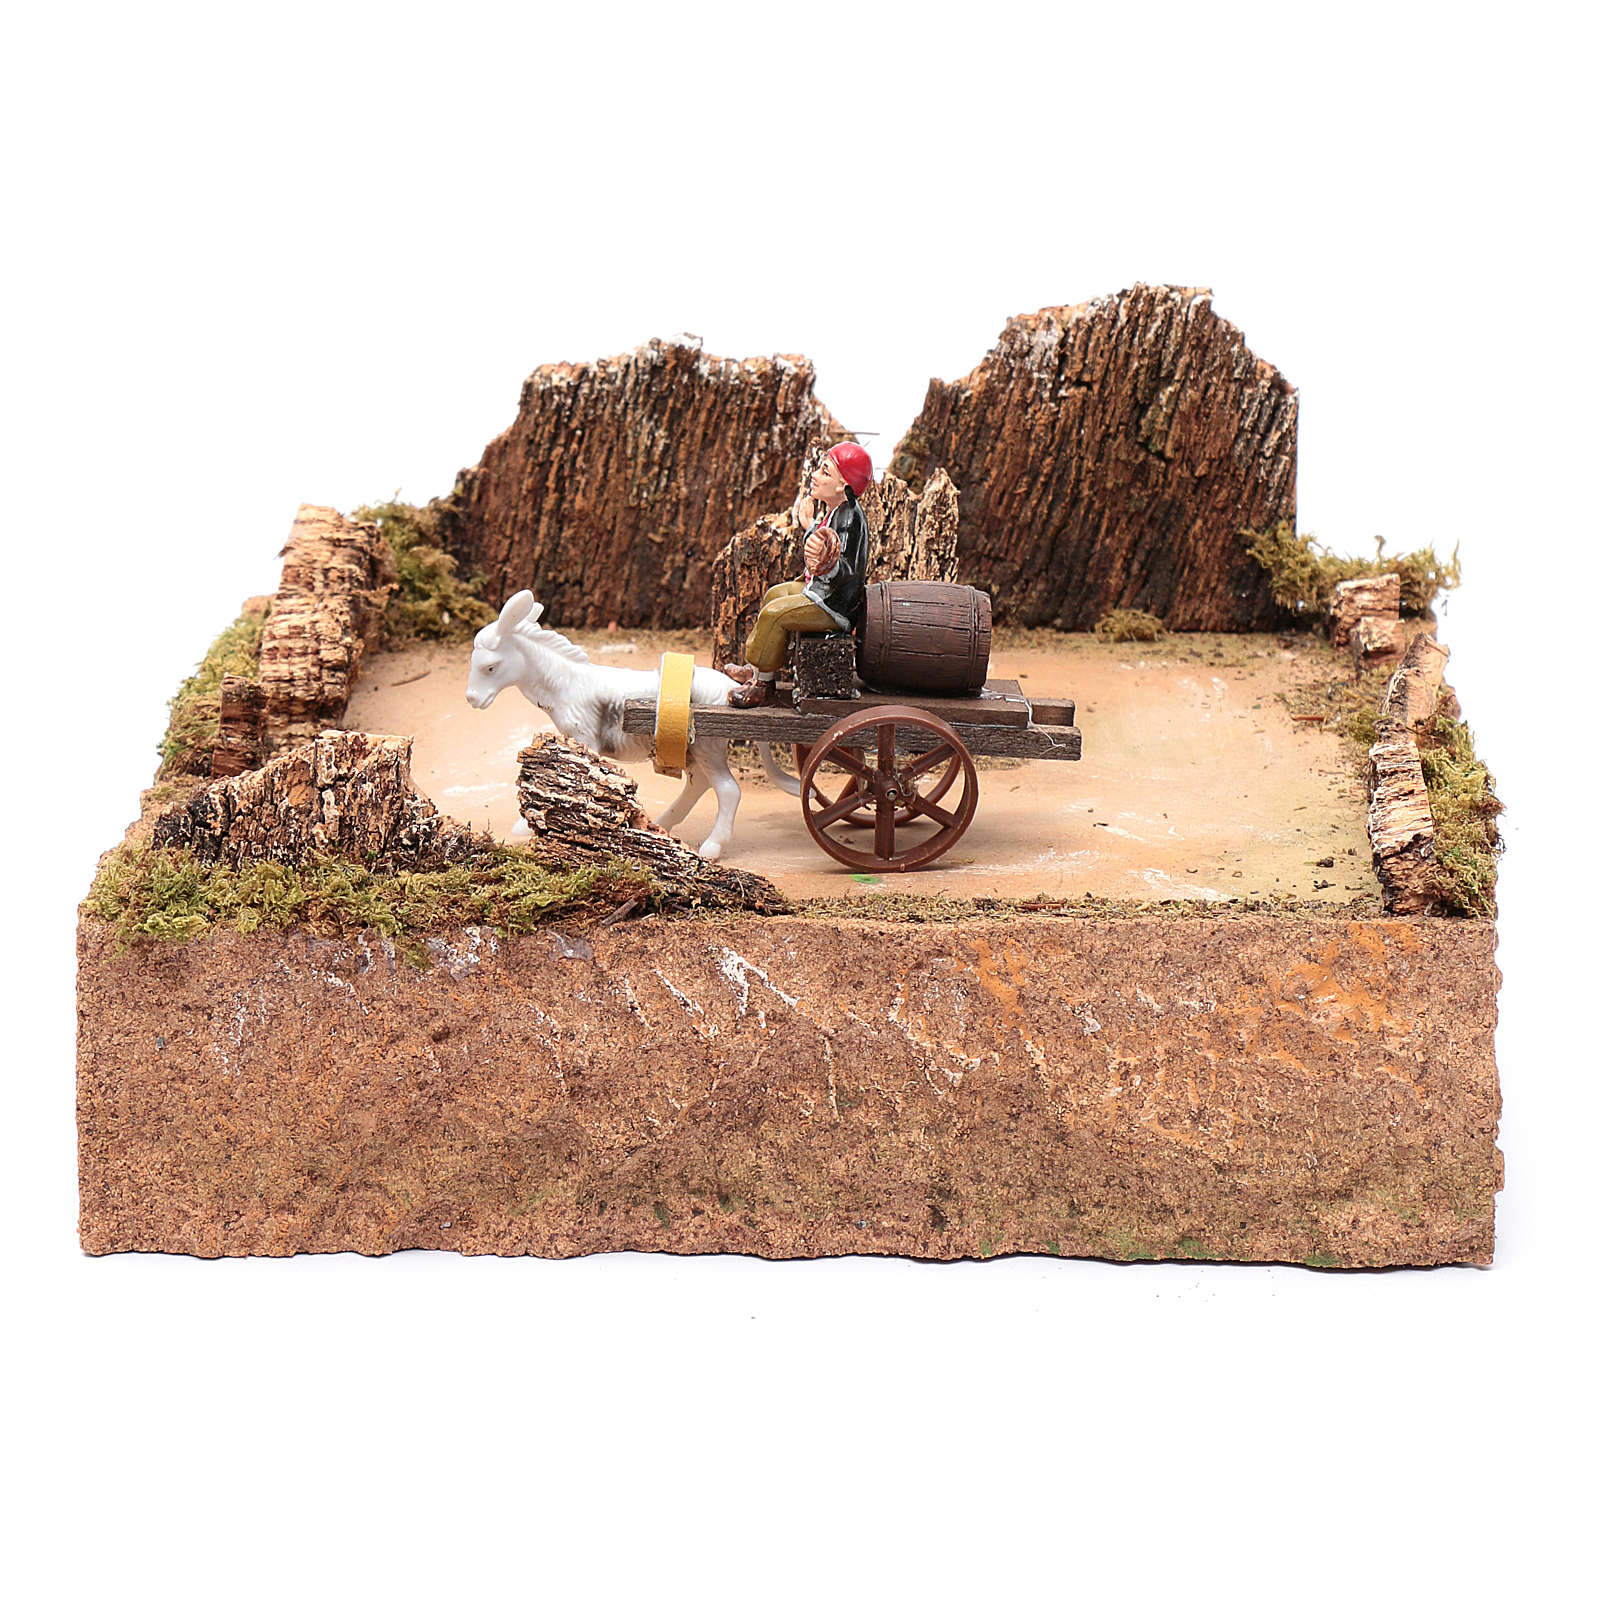 Moving shepherd on cart with horse nativity scene setting 3